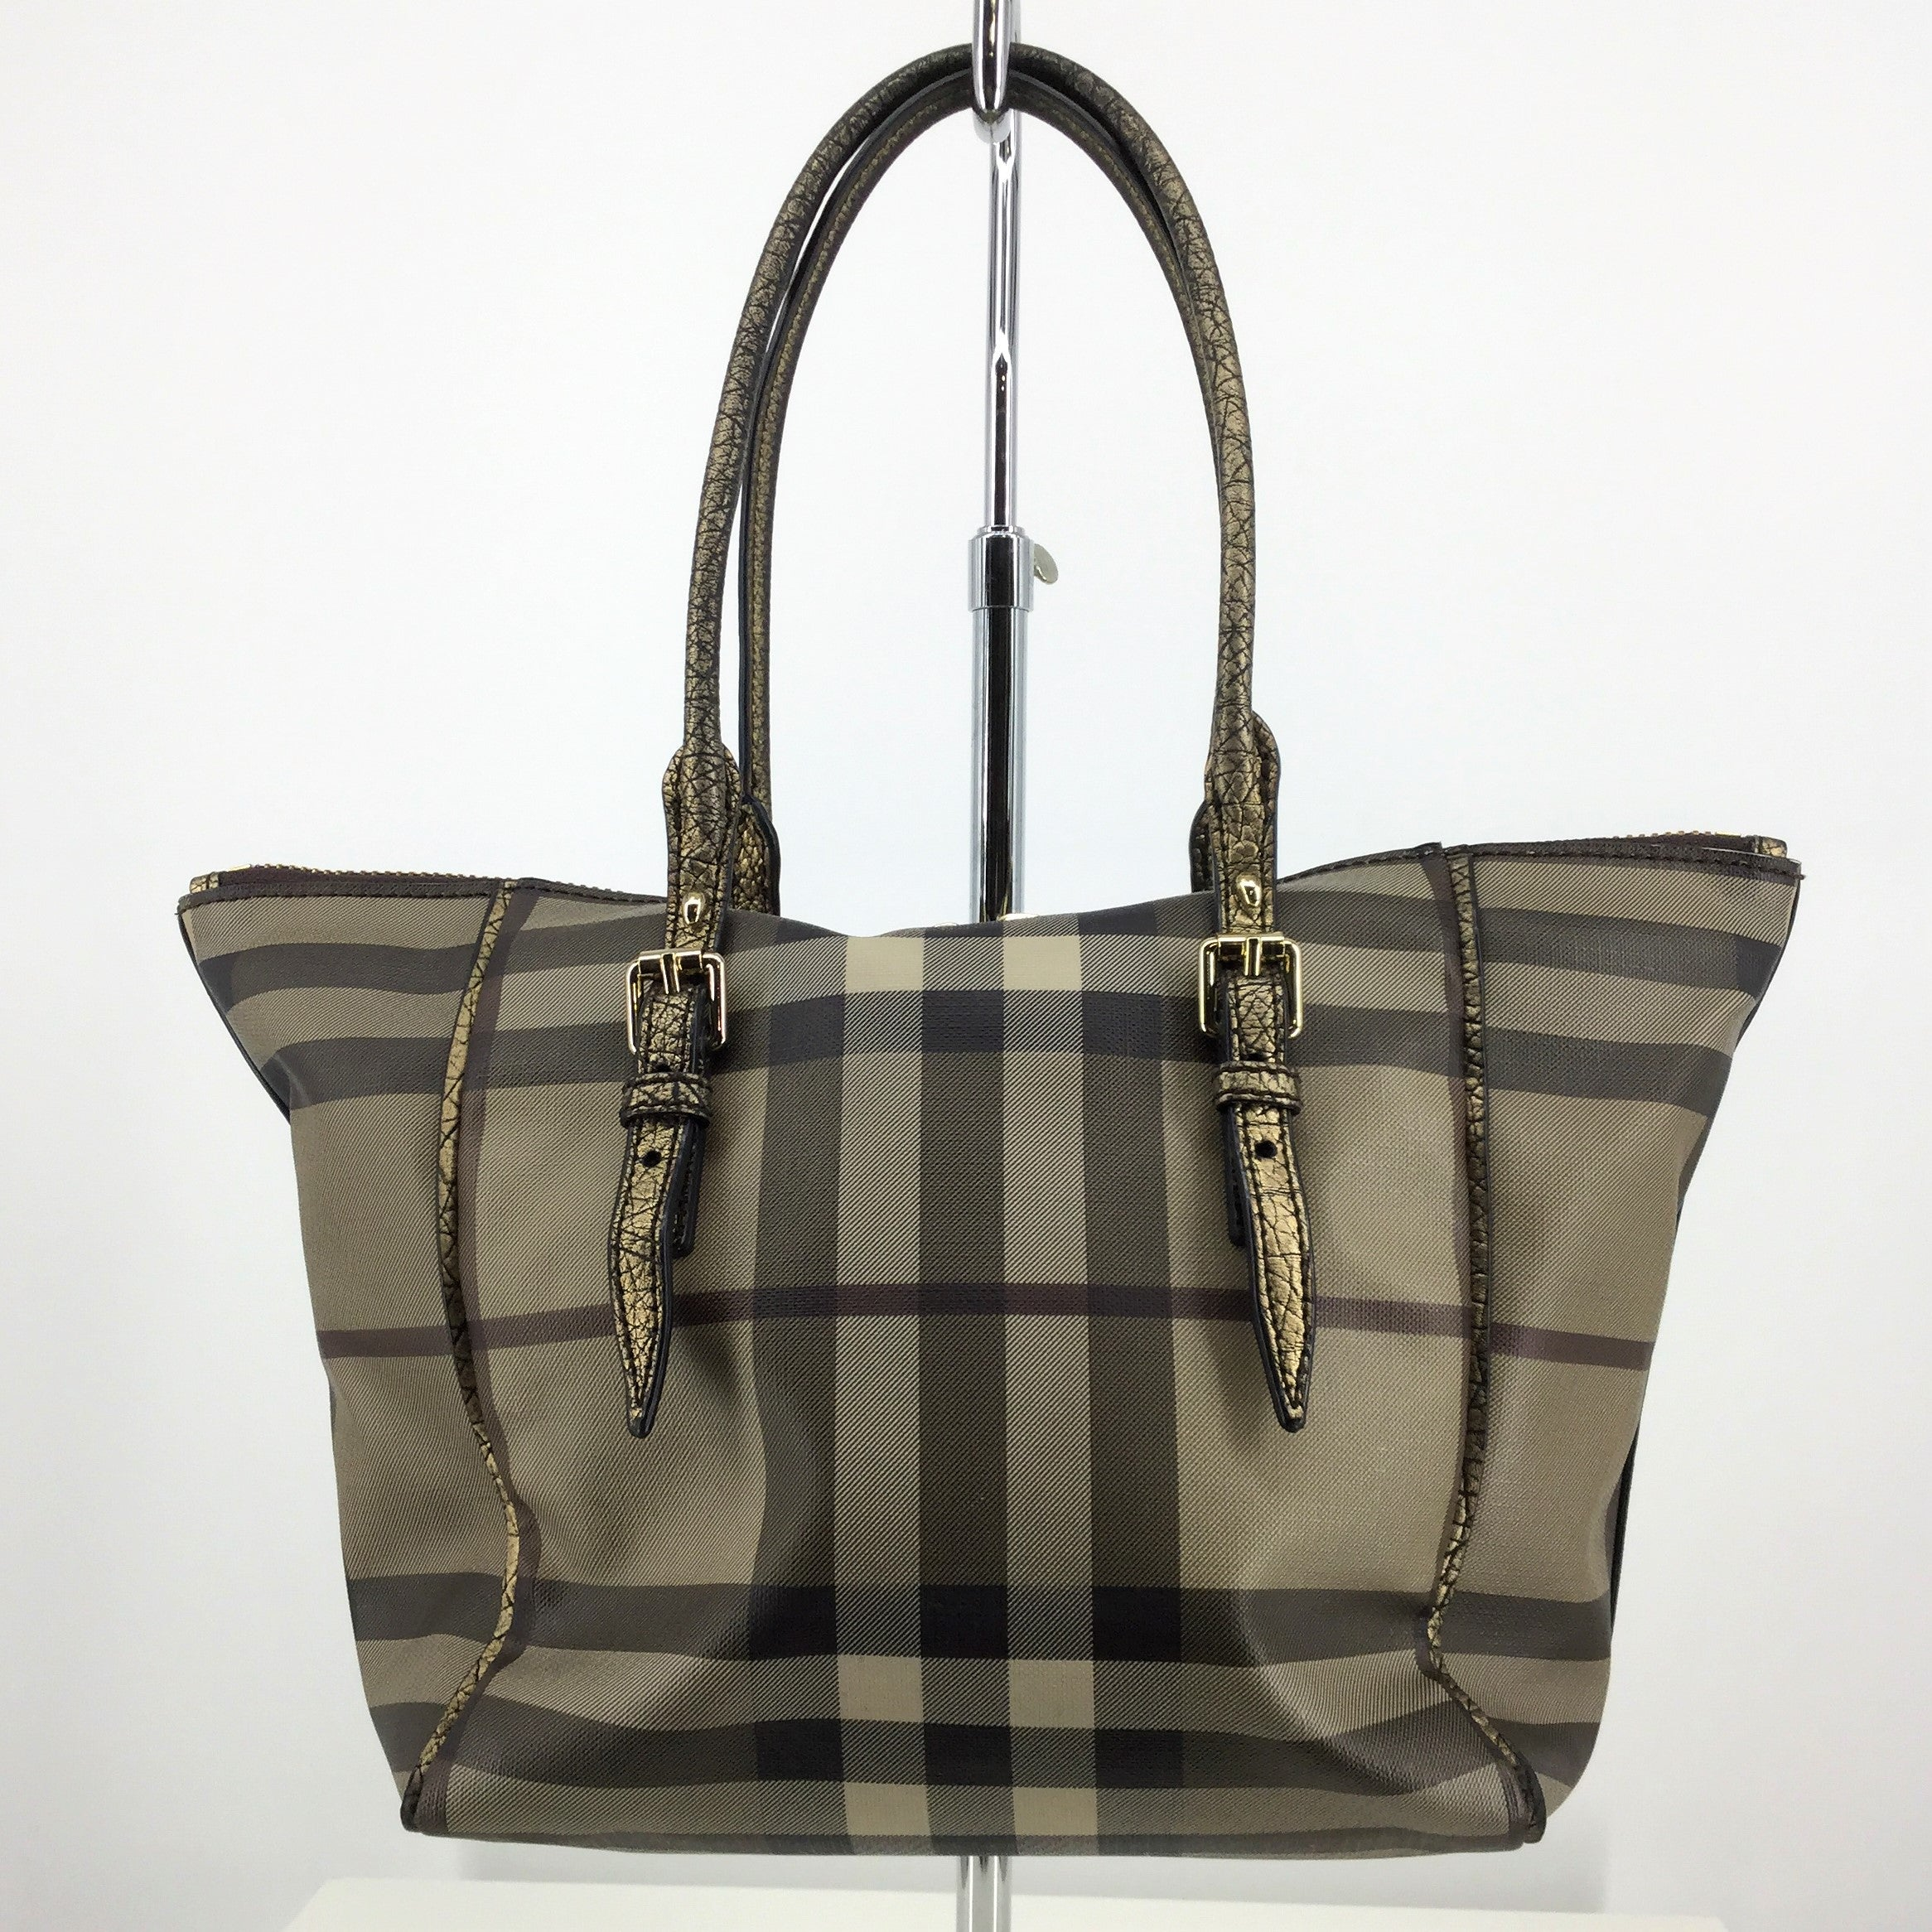 BURBERRY HANDBAG - BEAUTIFUL COATED CANVAS BURBERRY TOTE WITH BRONZE DETAILING. GOLD HARDWARE. ONE LARGE ZIPPER POCKET INSIDE AND TWO SLIP POCKETS. SOME NORMAL WEAR AND TEAR, AND FADING ON HANDLES.